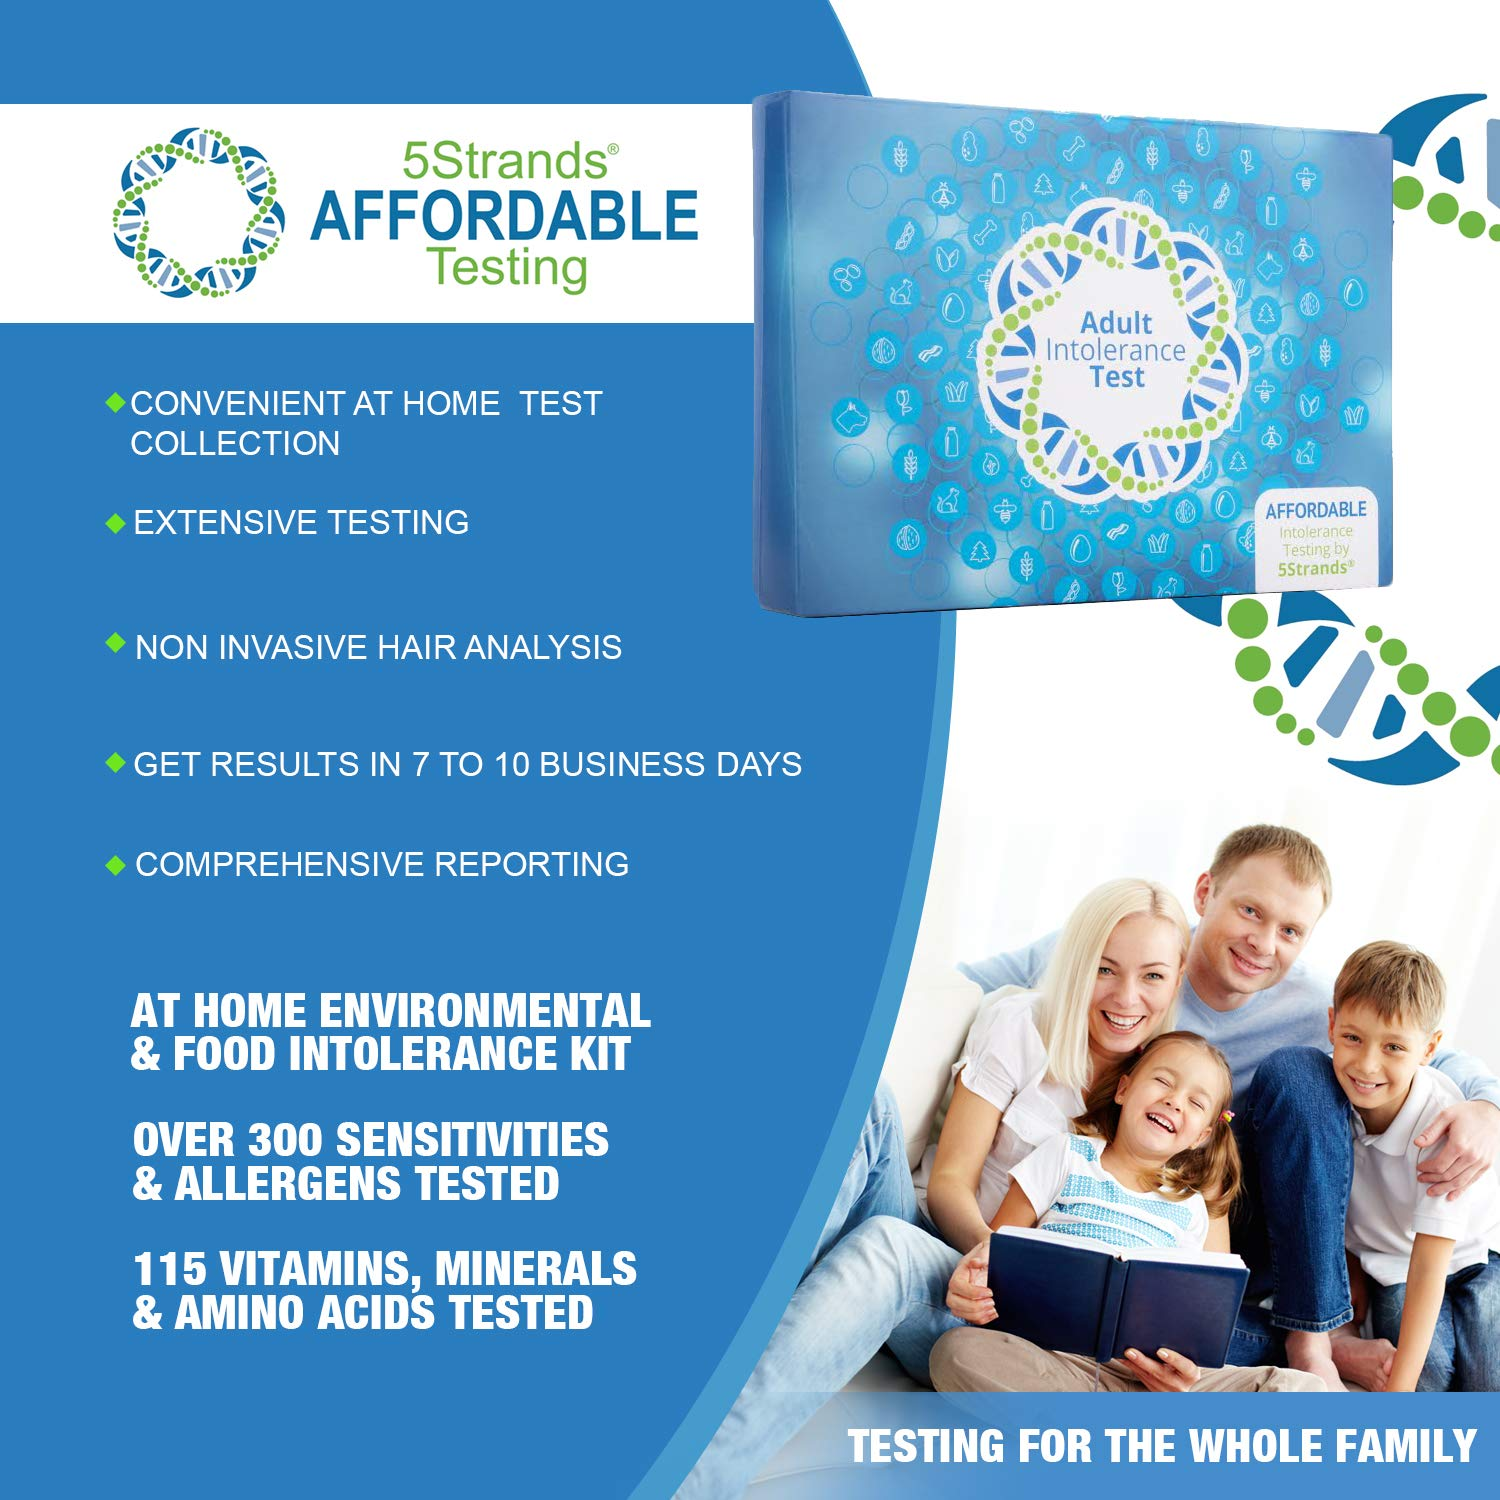 5Strands | Affordable Allergy & Intolerance Adult Test | at Home Environmental & Food Intolerance Kit | Tests for Over 350 Sensitivities & Allergens | Hair Analysis | Results in 1-2 Weeks | 1 Pack by 5Strands (Image #1)